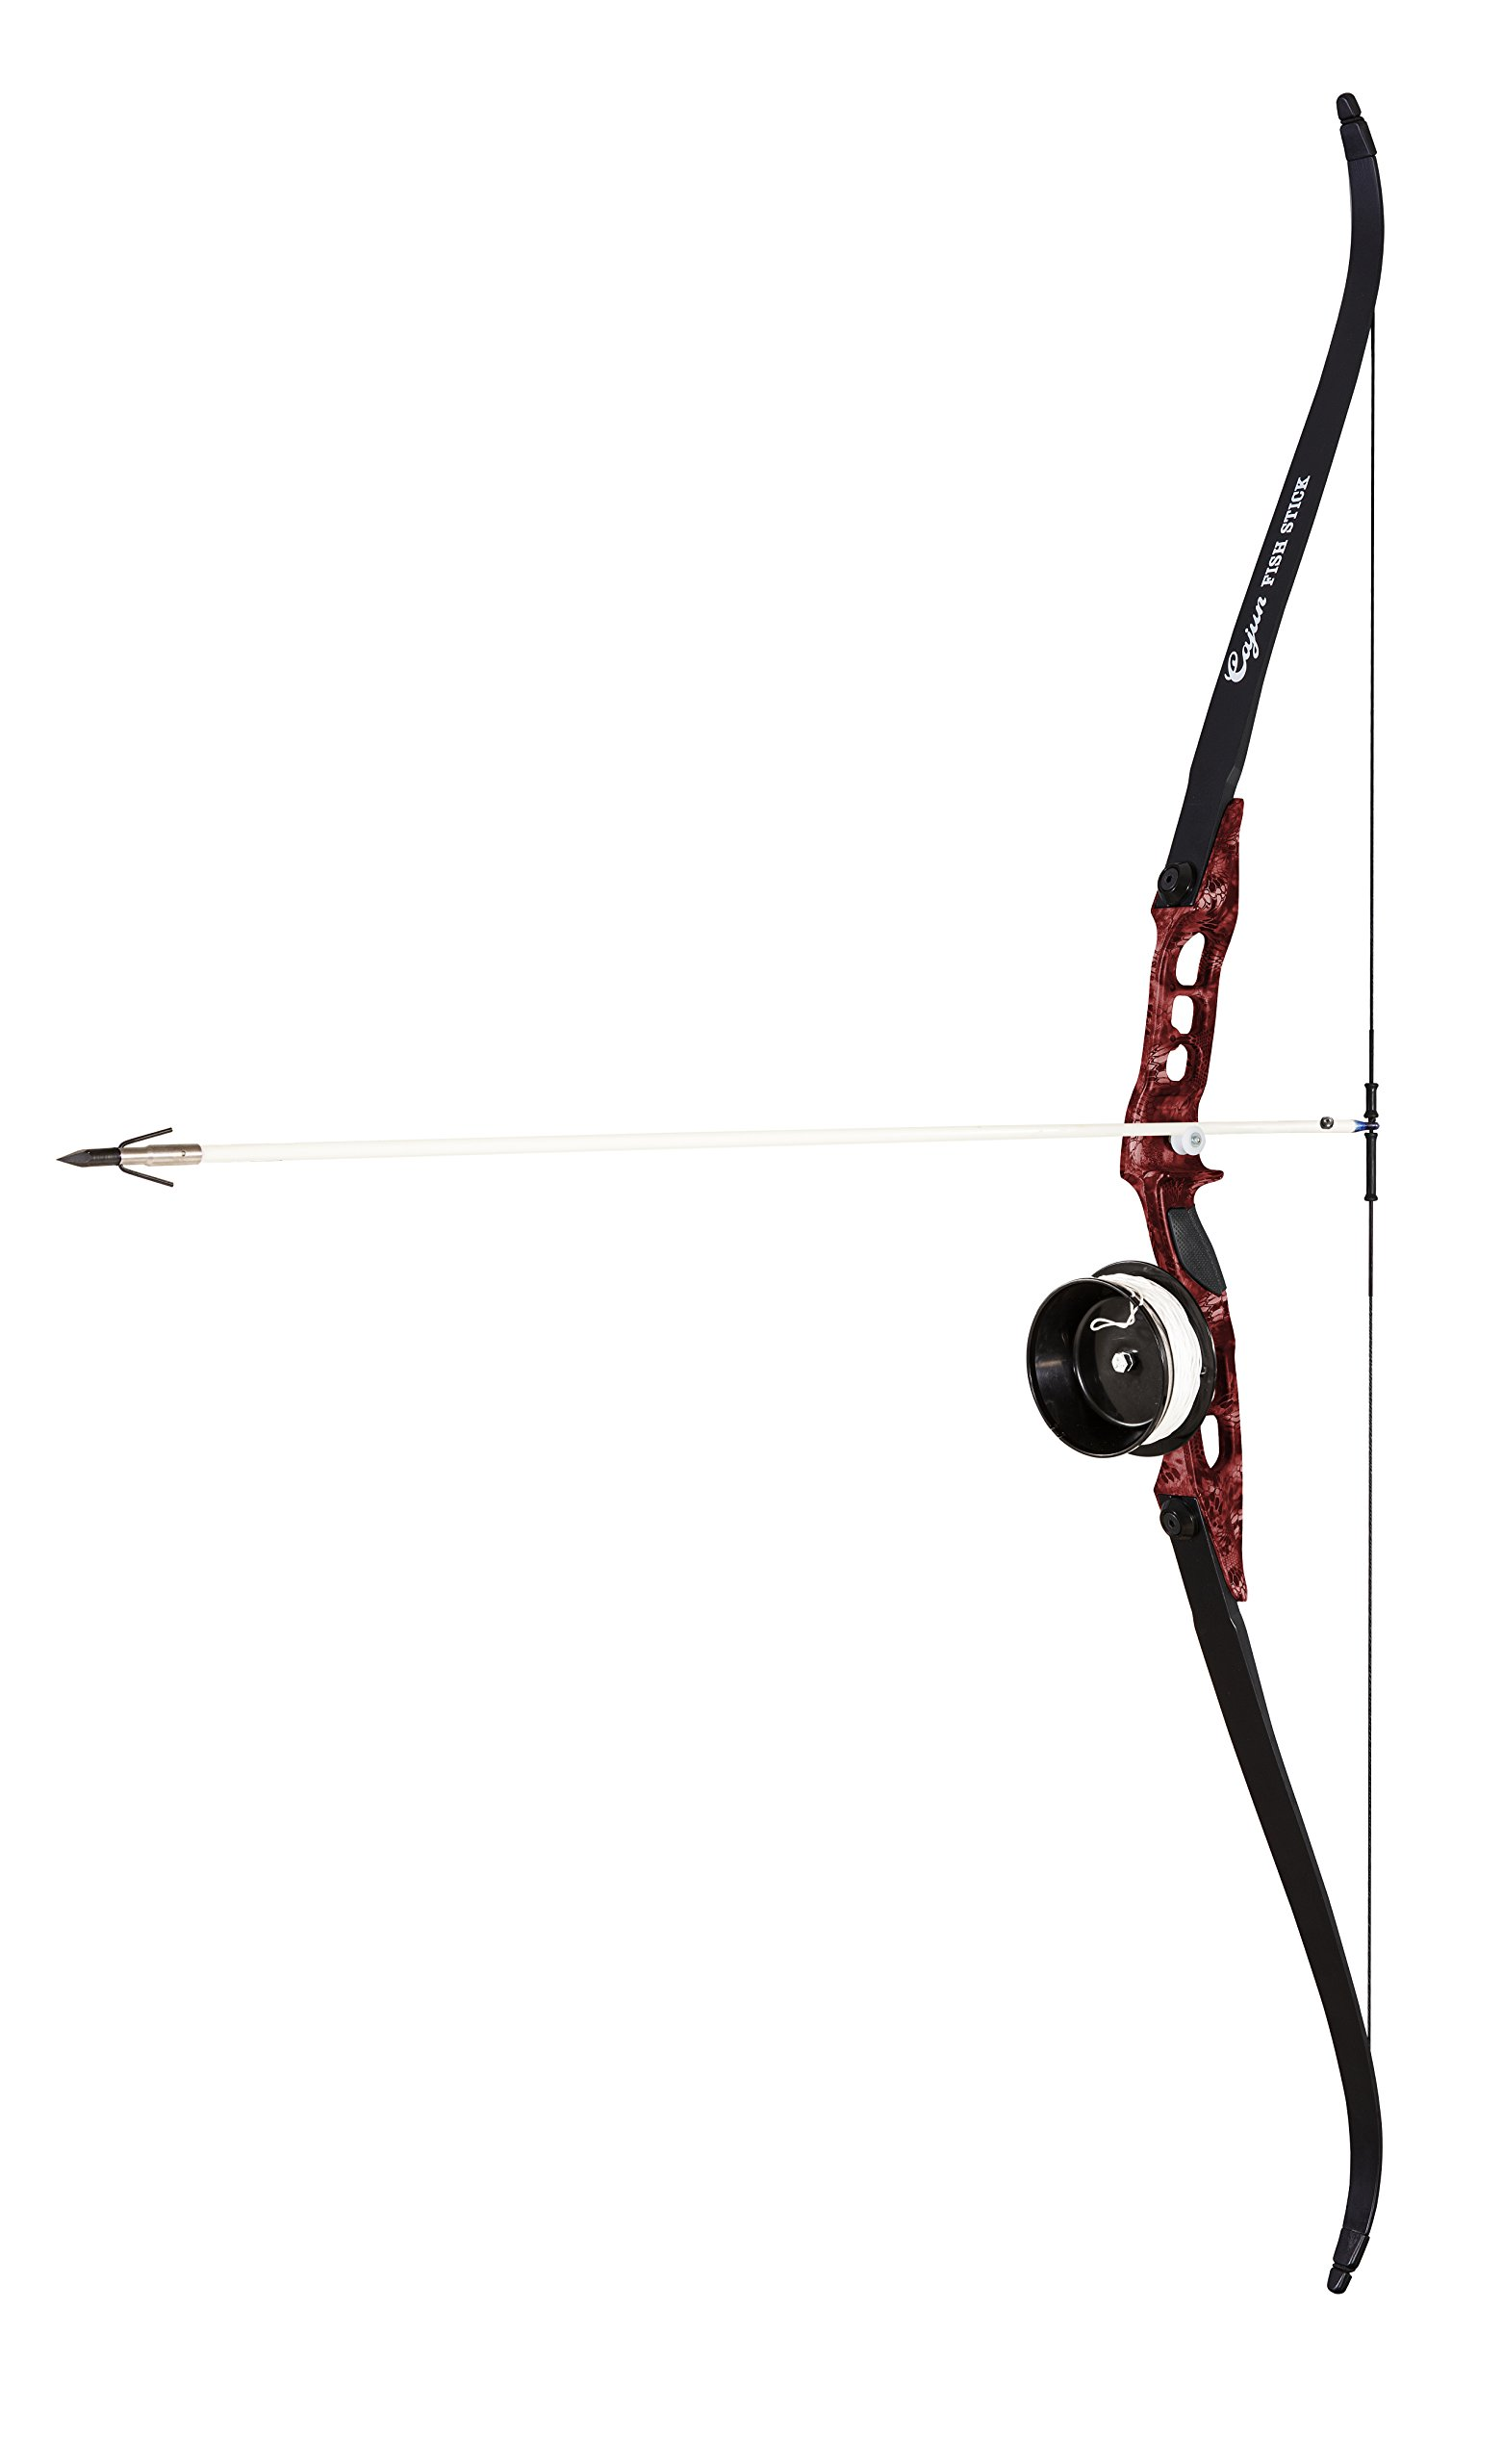 Cajun Bowfishing Fish Stick Bowfishing Bow